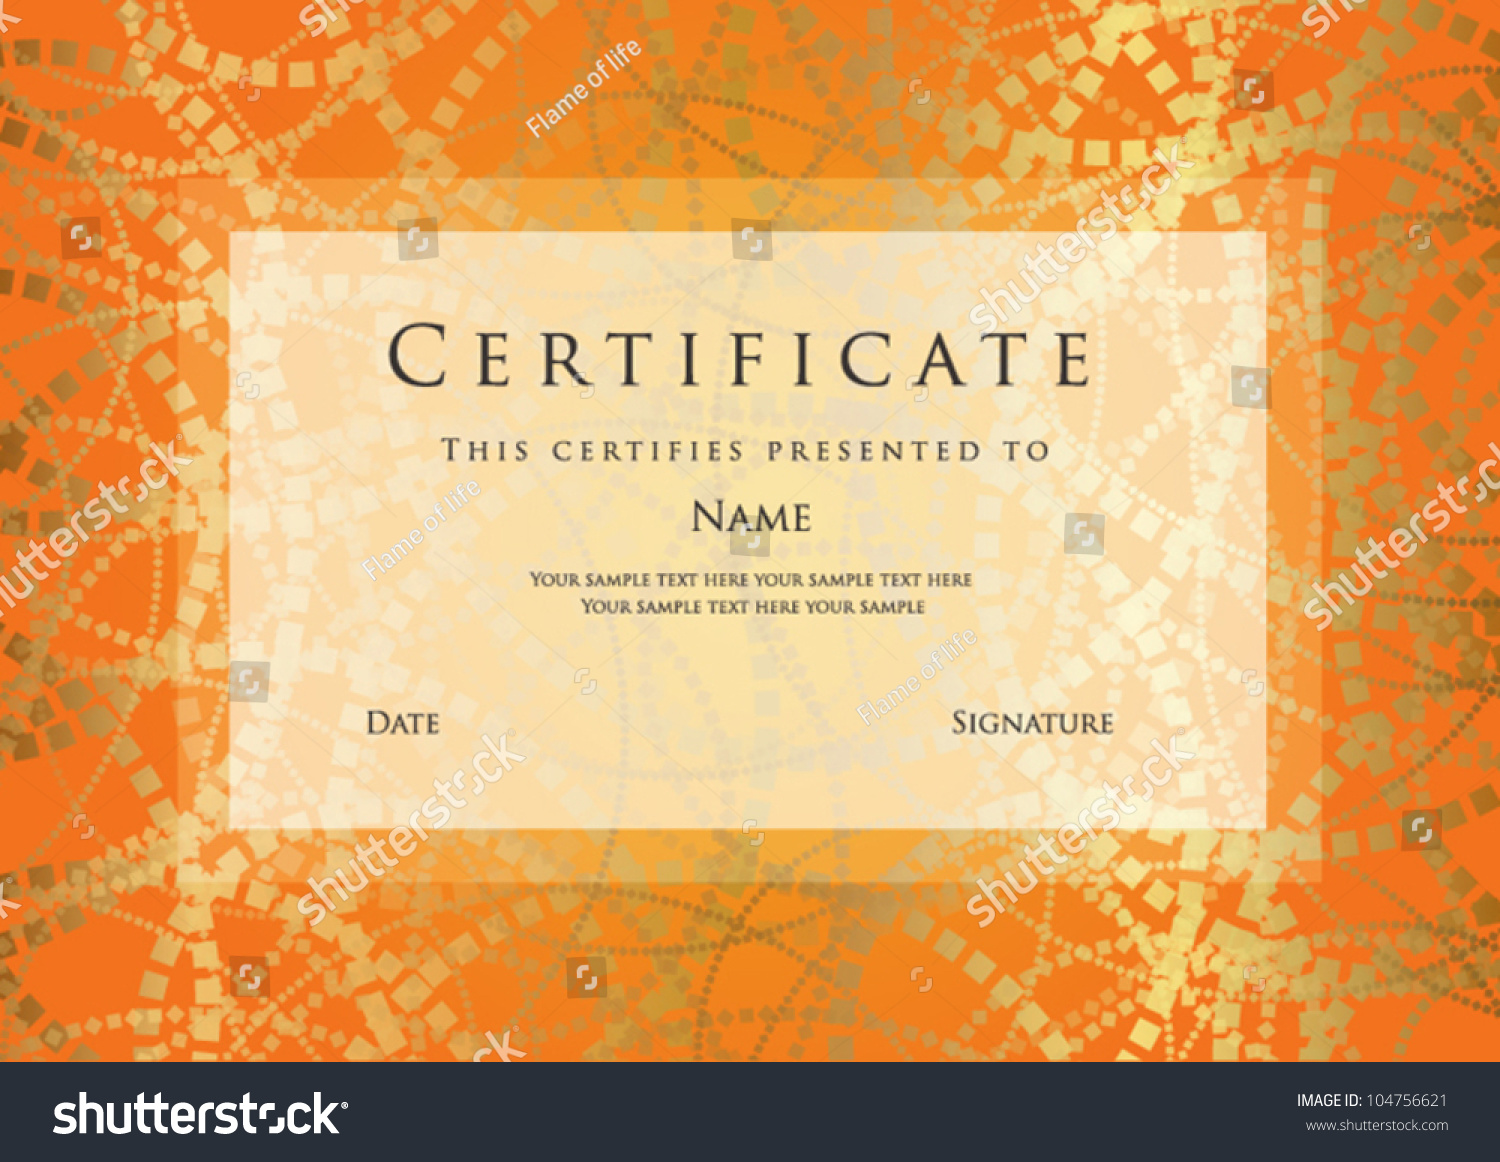 Horizontal Orange Certificate Of Completion Template With Abstract Pattern  And Frame. This Design Usable For